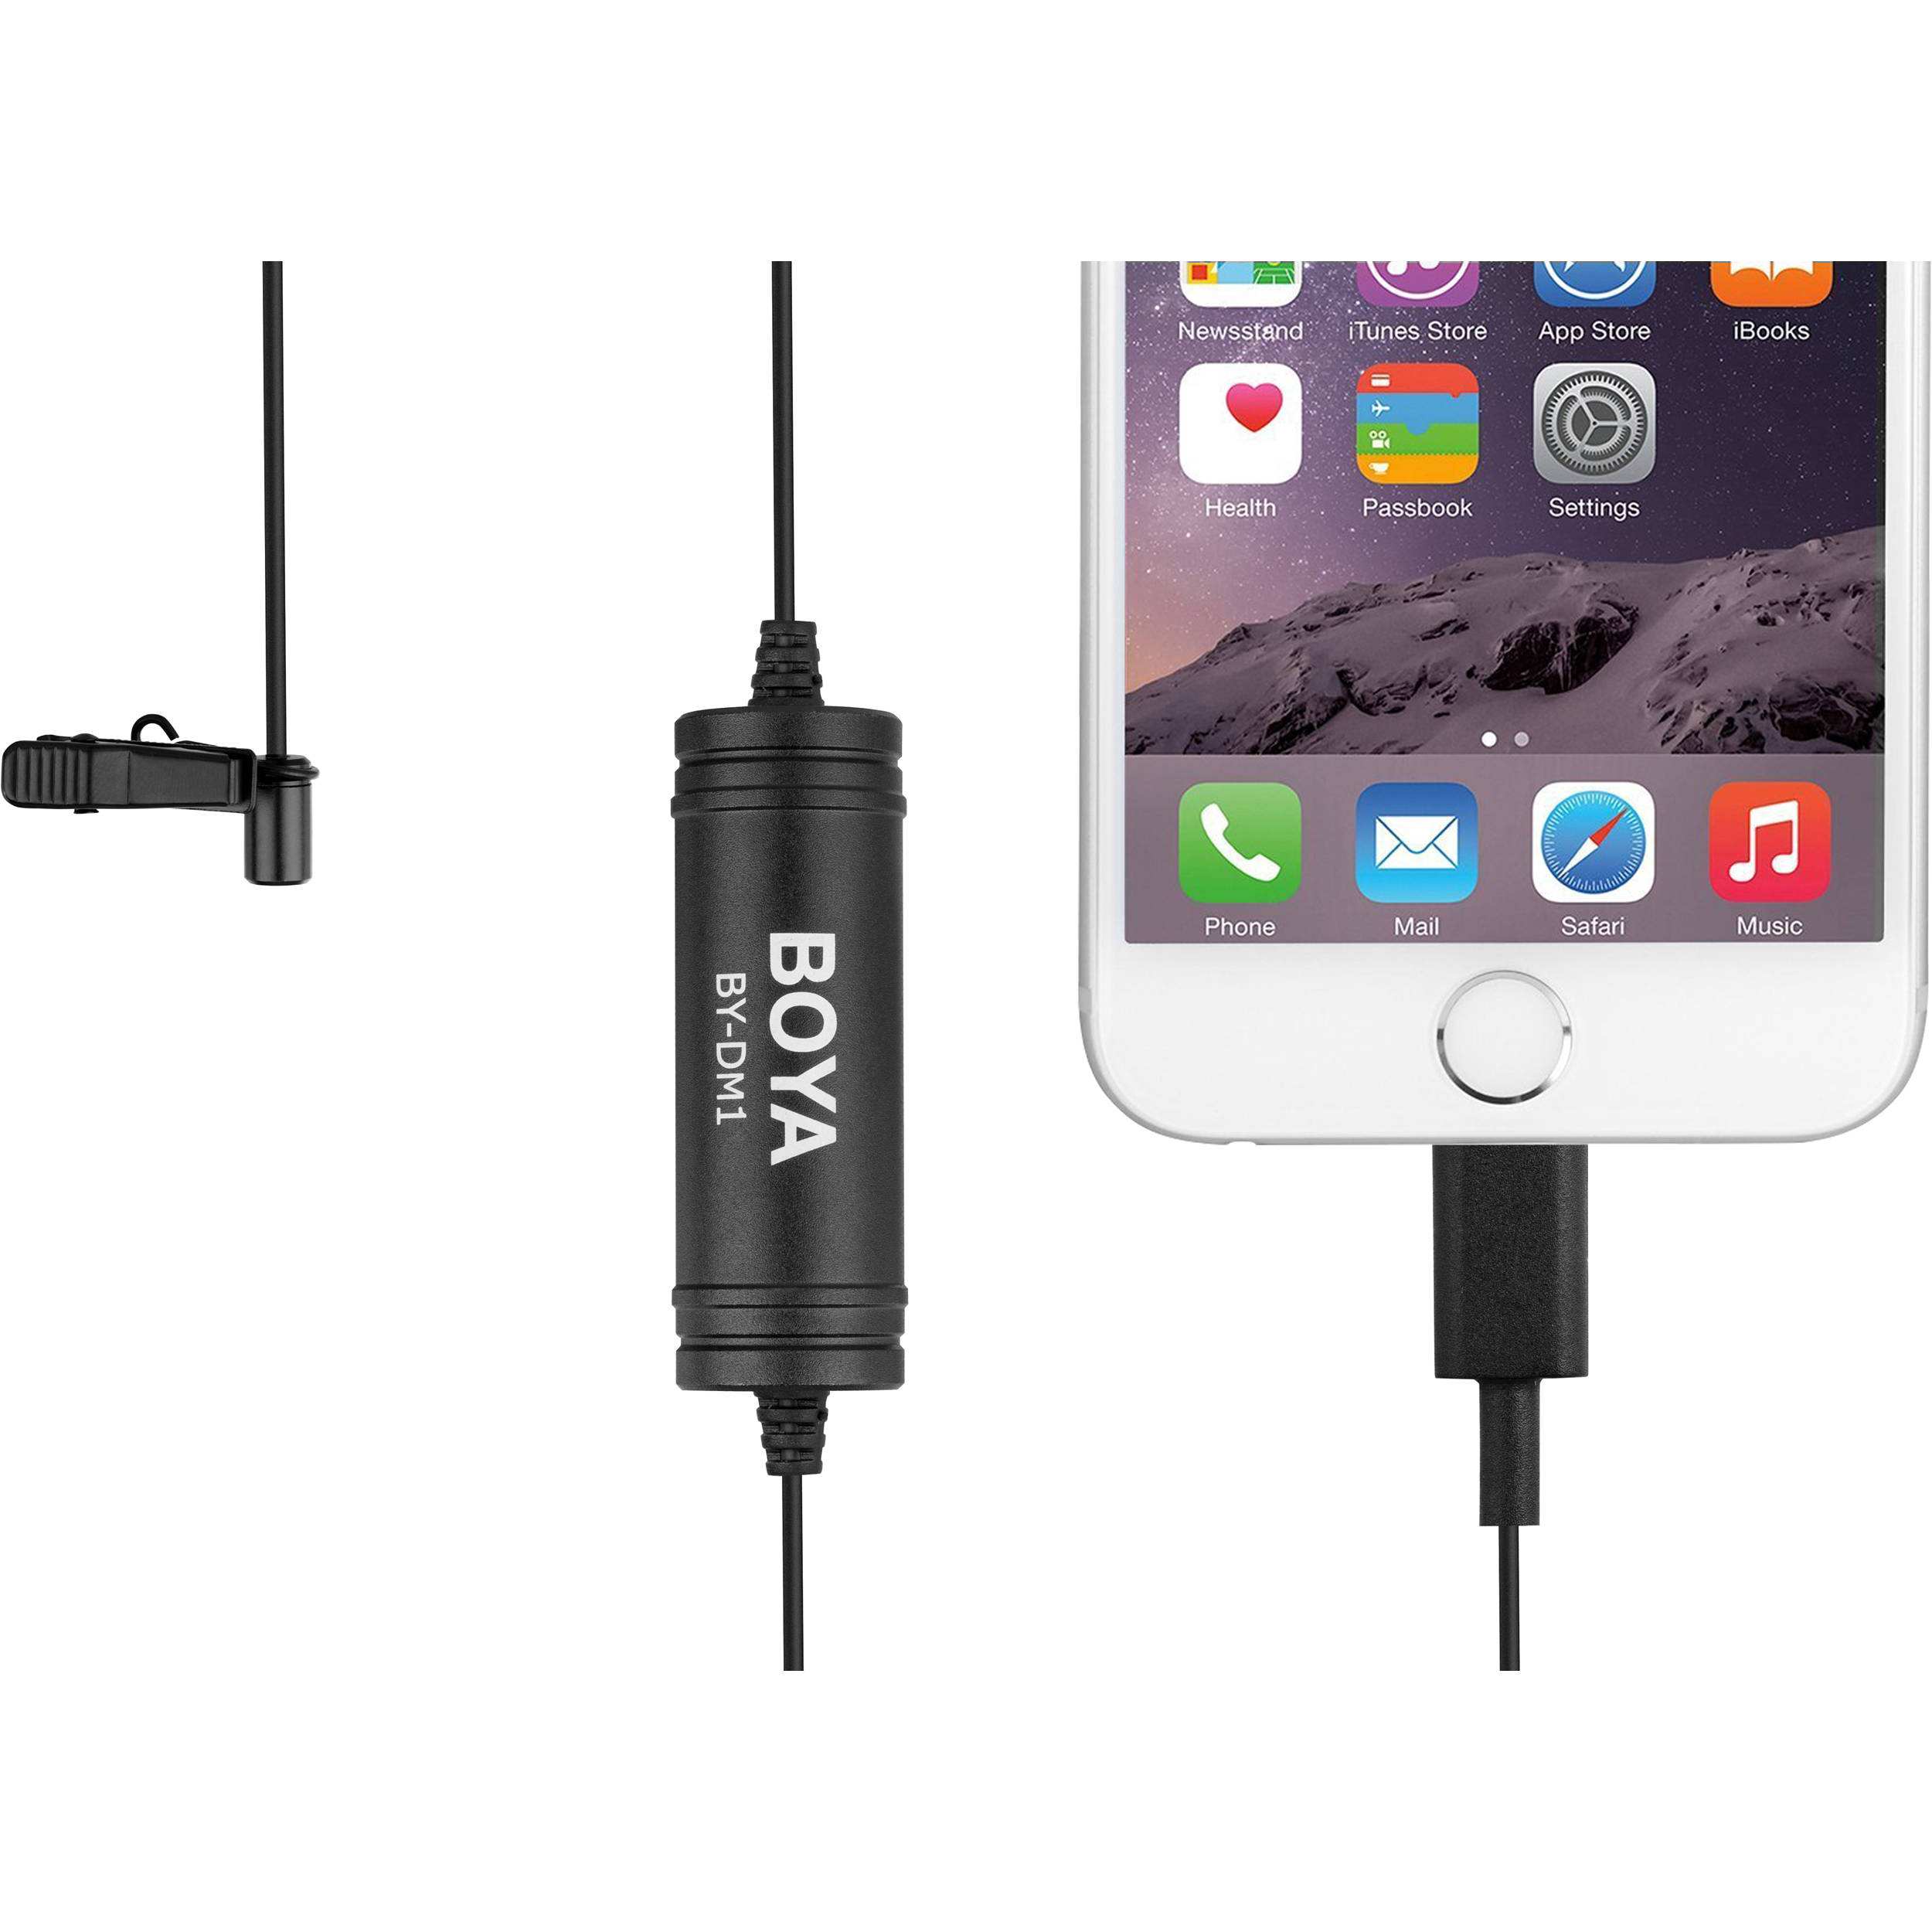 BOYA Lapel Clip-on Mic with iOS MFI Certified Lightning Input for iPhone X 8 7 Plus SE 6 6s iPad Pro Mini iPod Touch for YouTube Video Vblog Podcast Micro Film 19ft //6m iPhone Lavalier Microphone